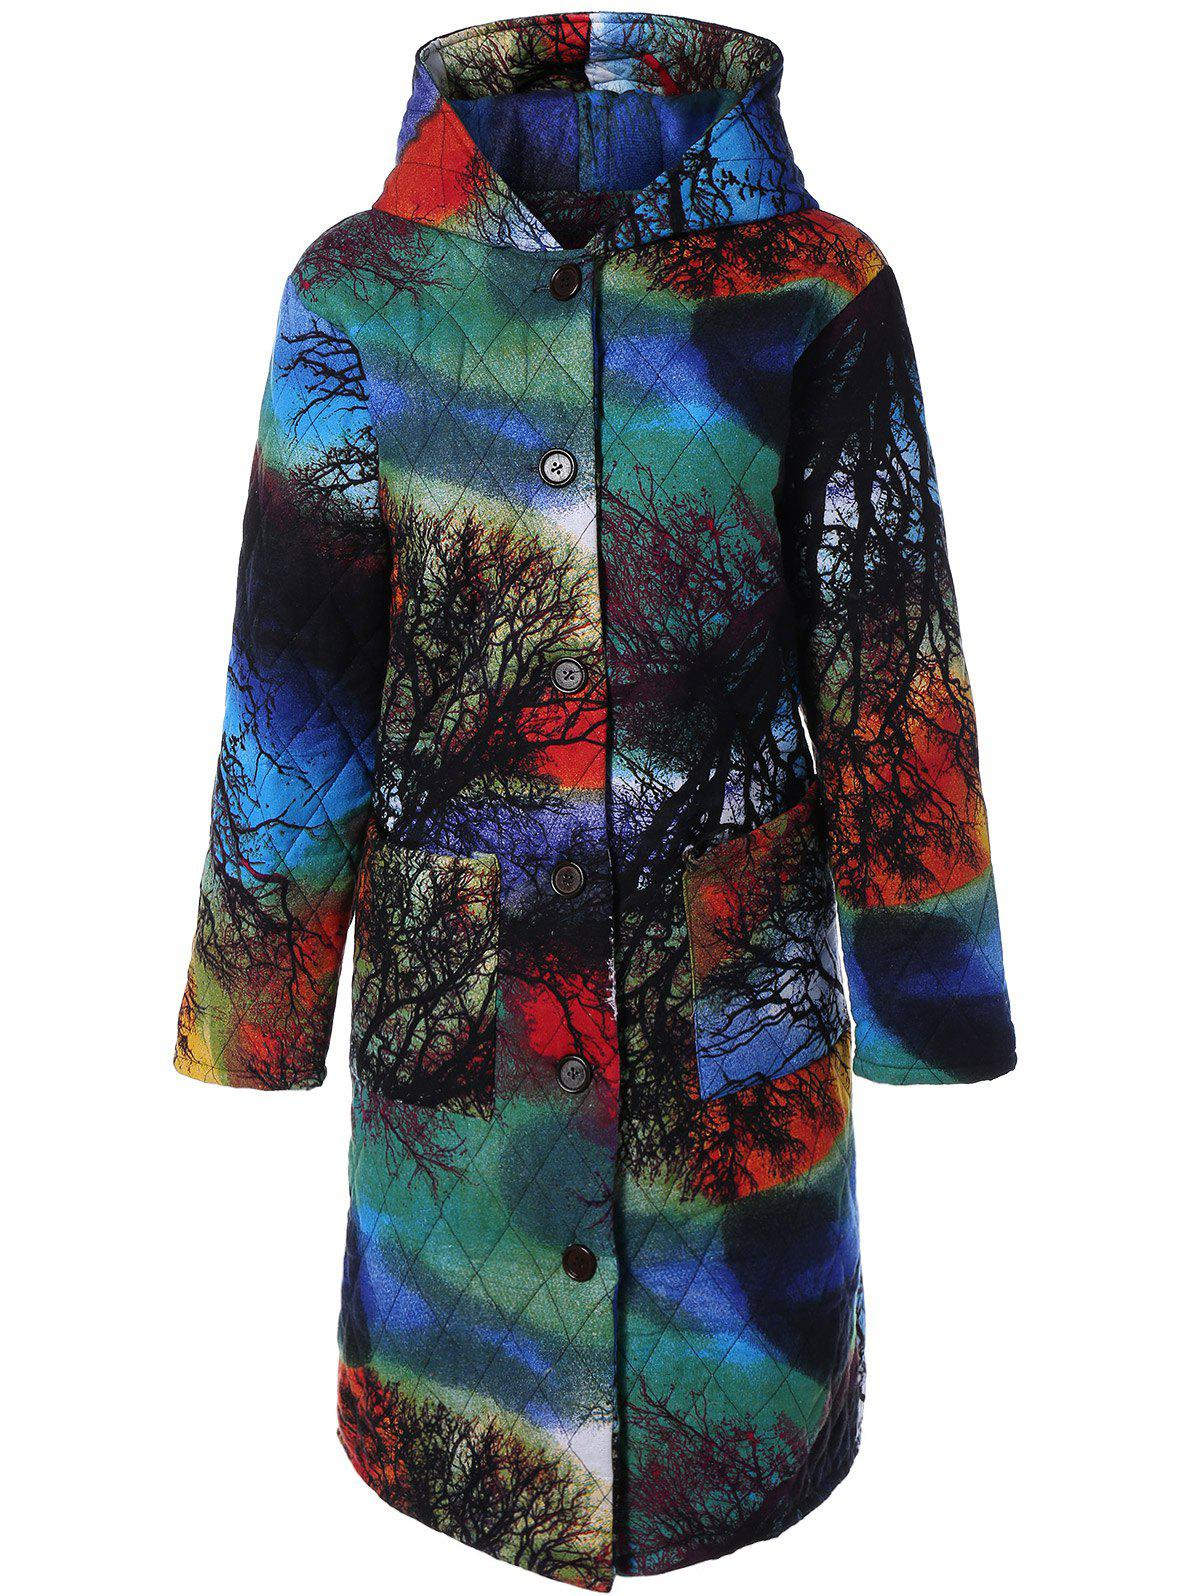 Shop Hooded Tree Print Plus Size Coat